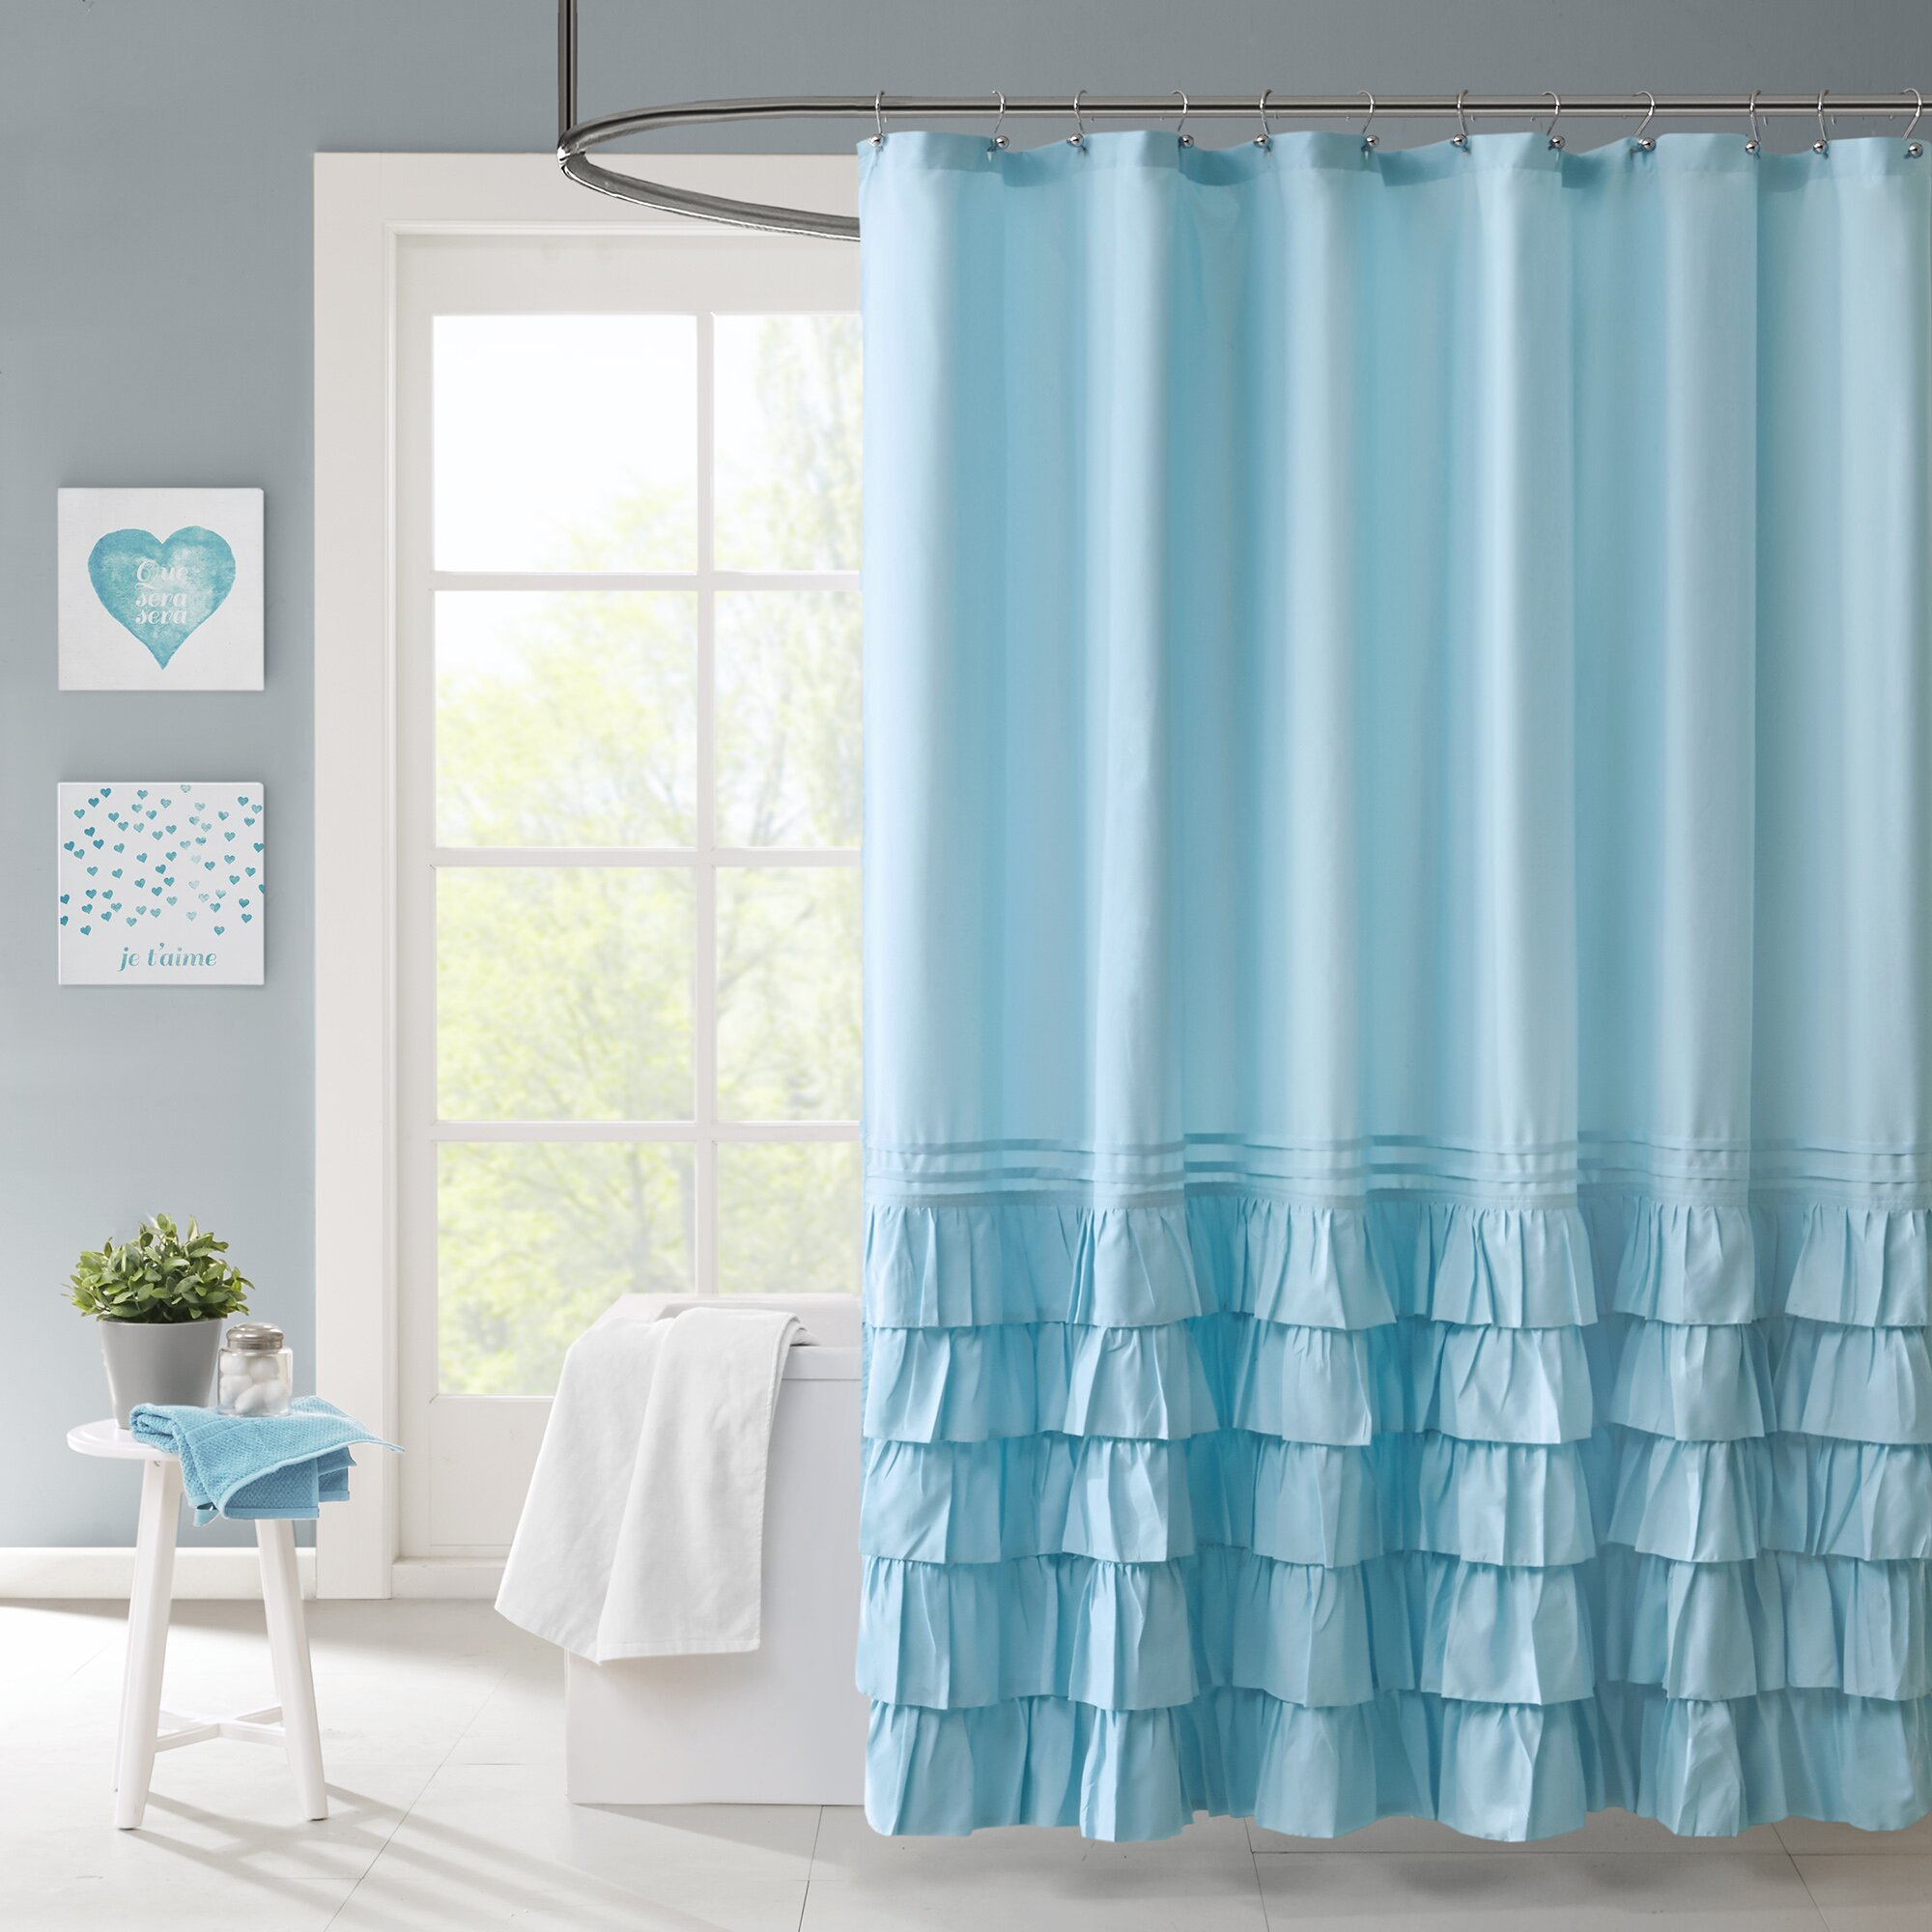 Intelligent design waterfall shower curtain reviews - Intelligent shower ...